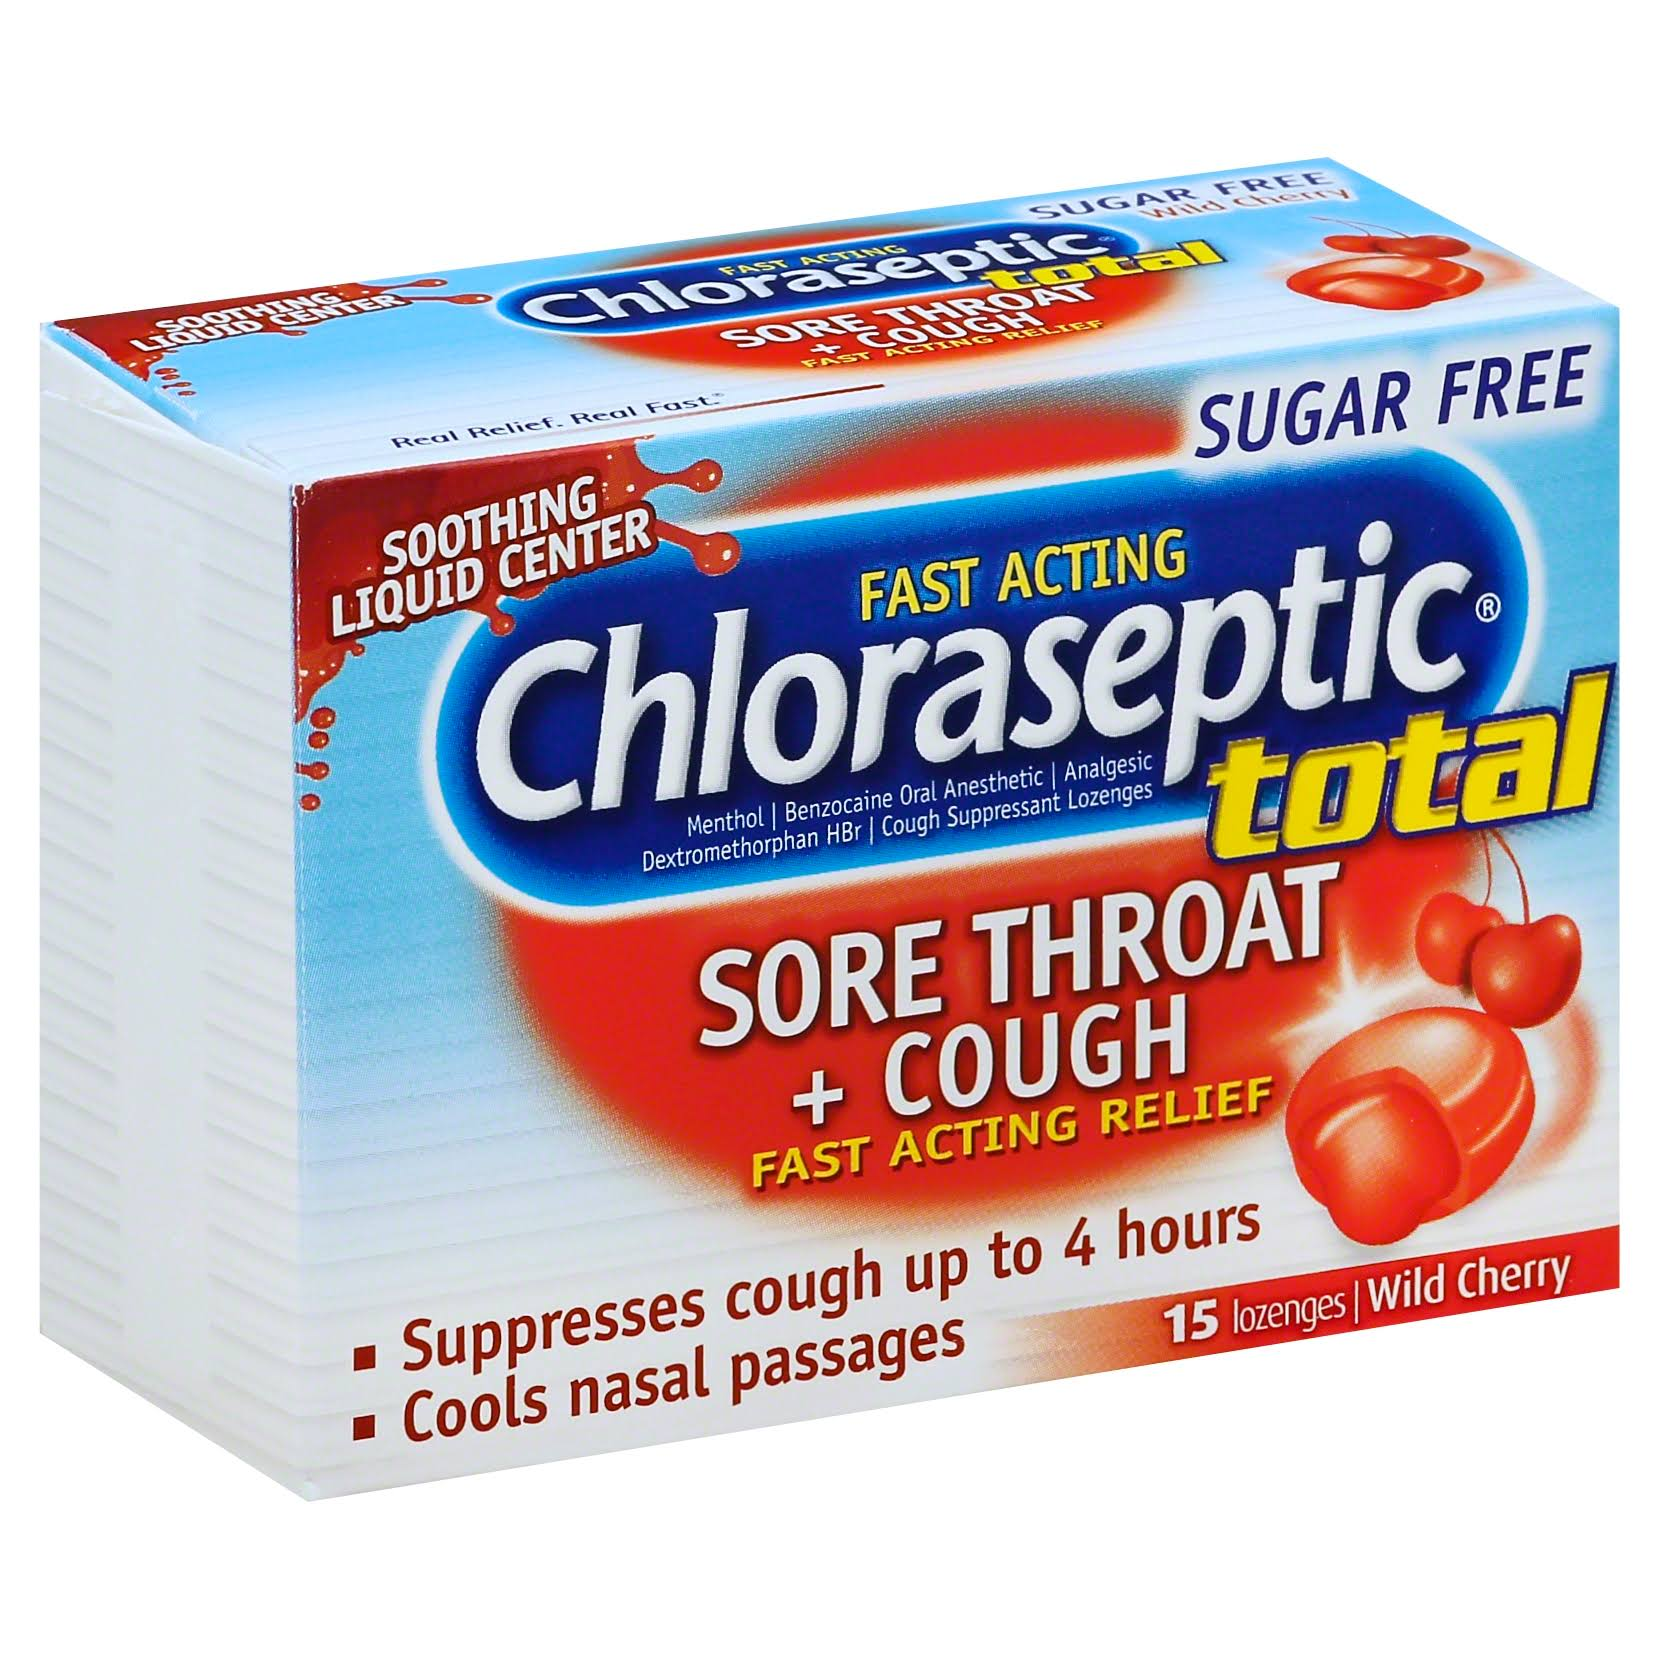 Chloraseptic Total Multi Symptom Relief Lozenges - Wild Cherry, 15ct